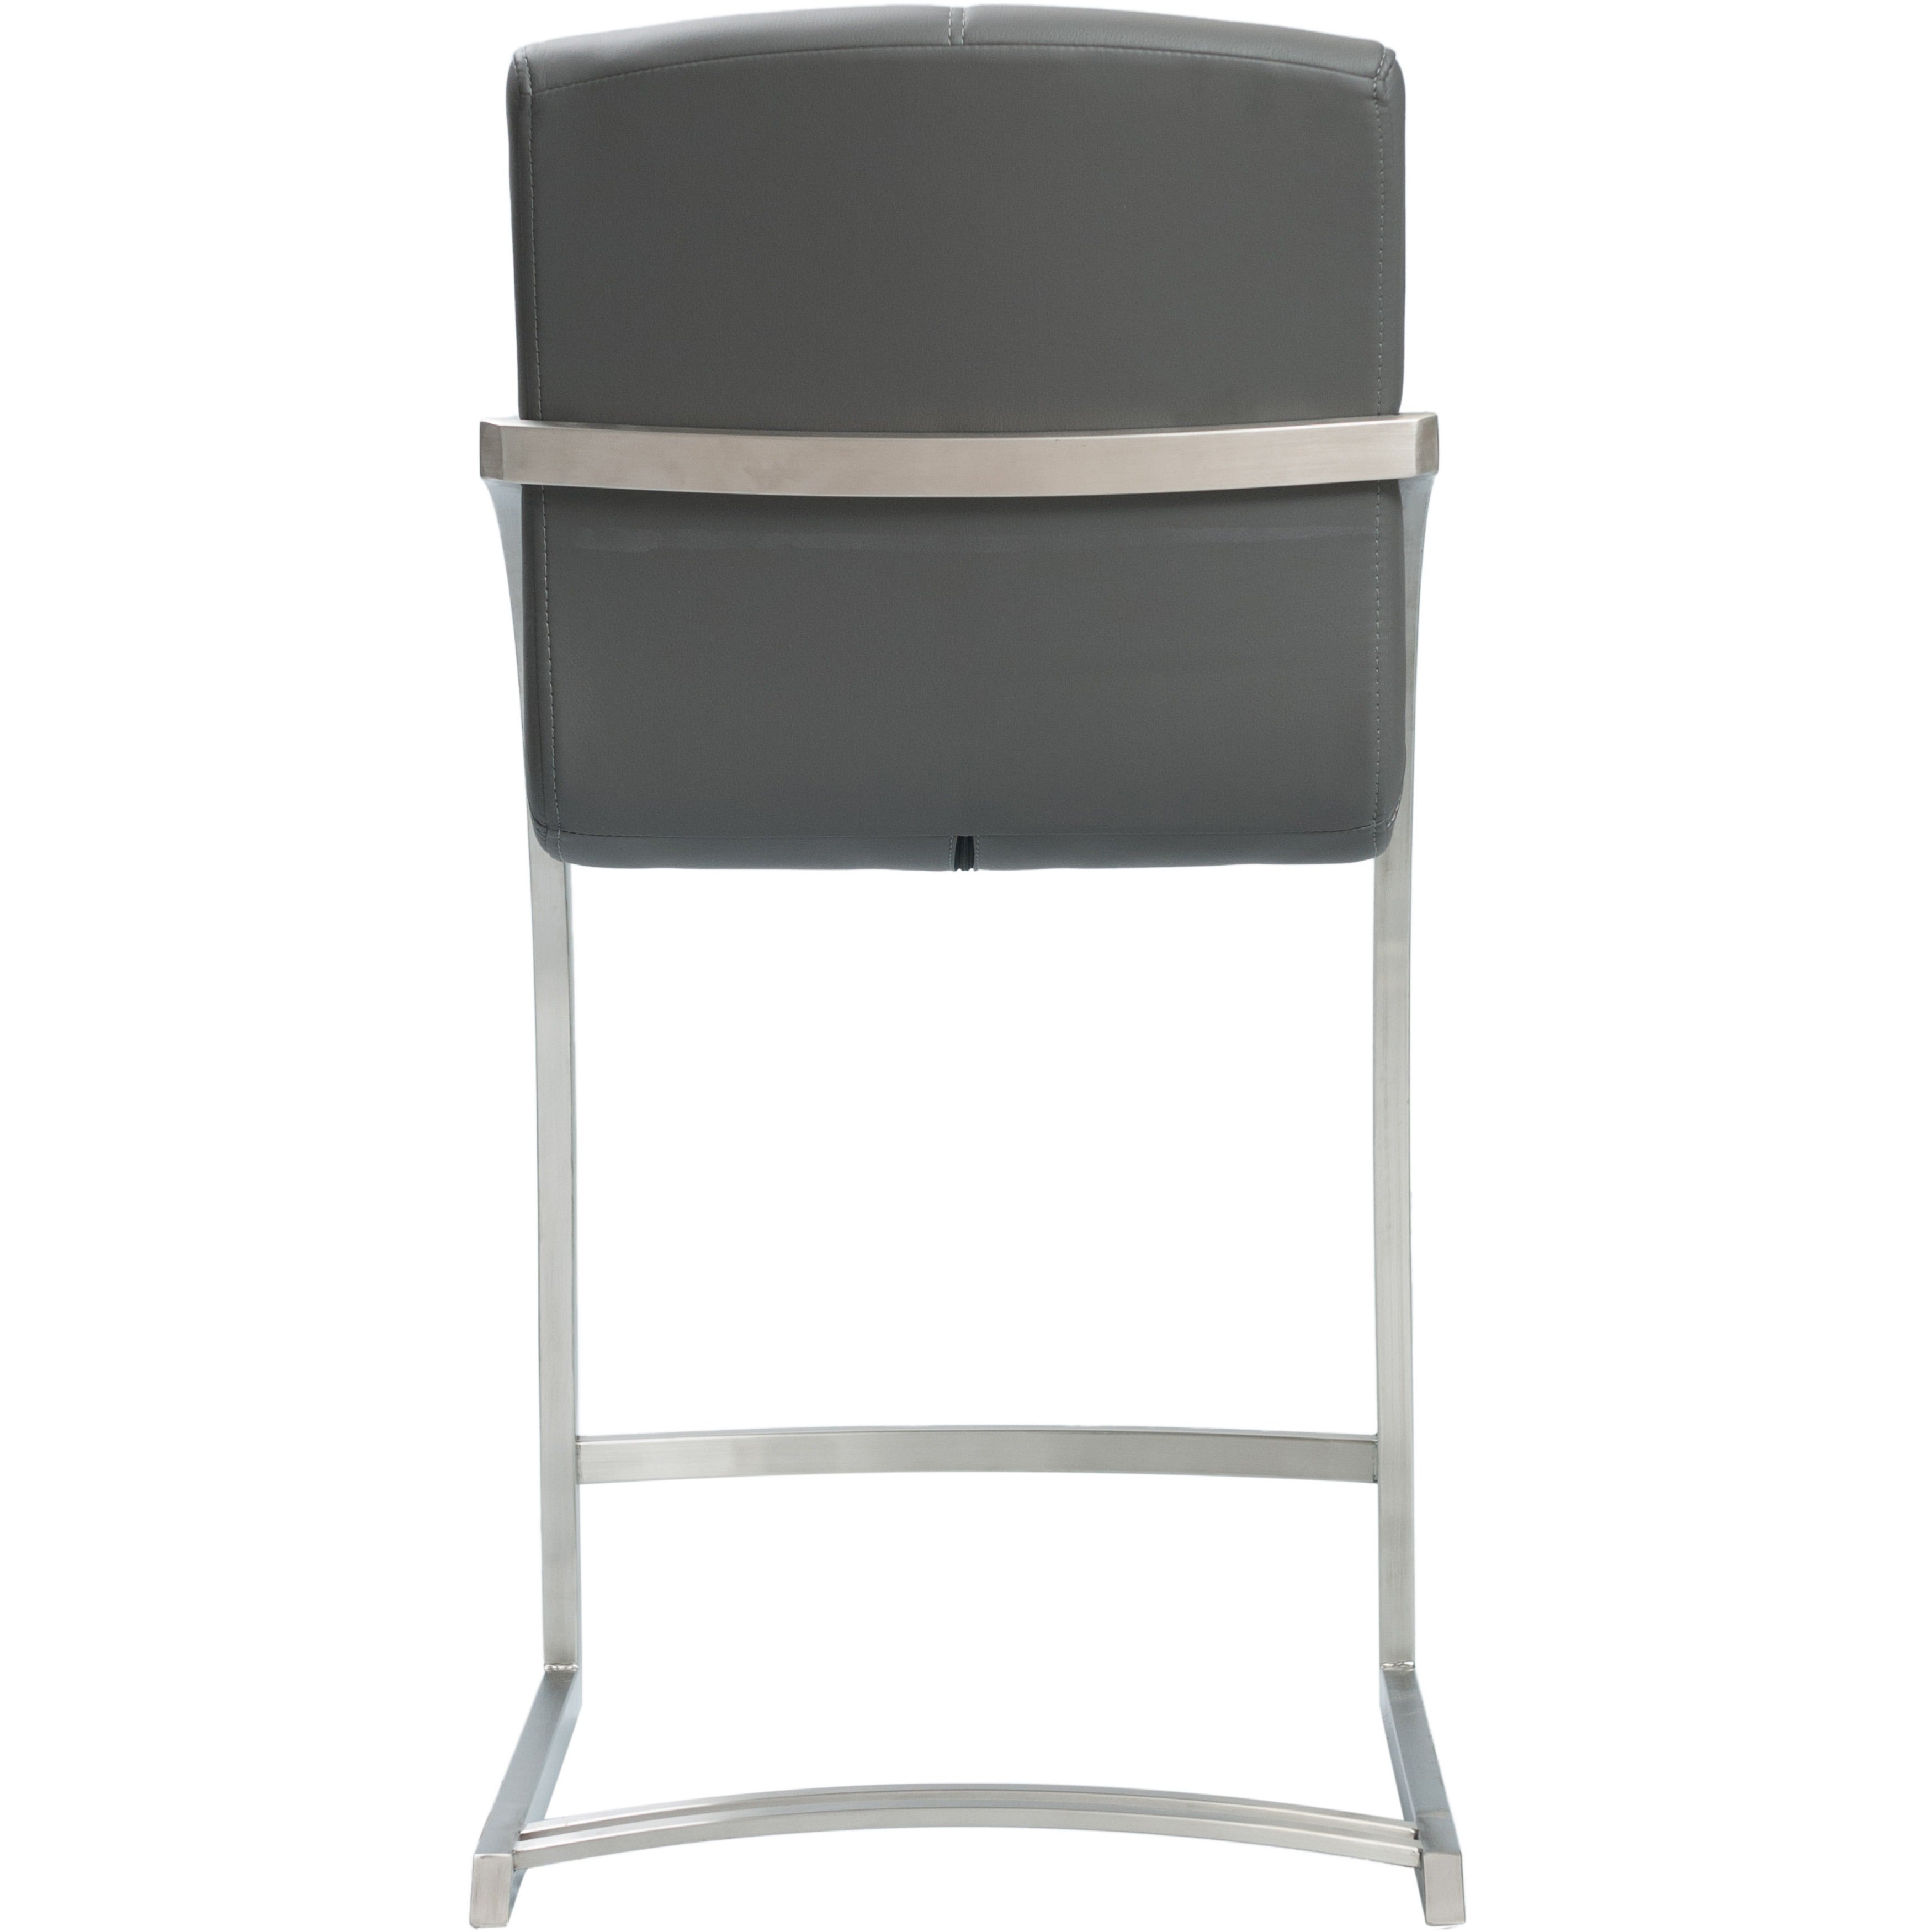 Unique Stainless Steel Bar Stools